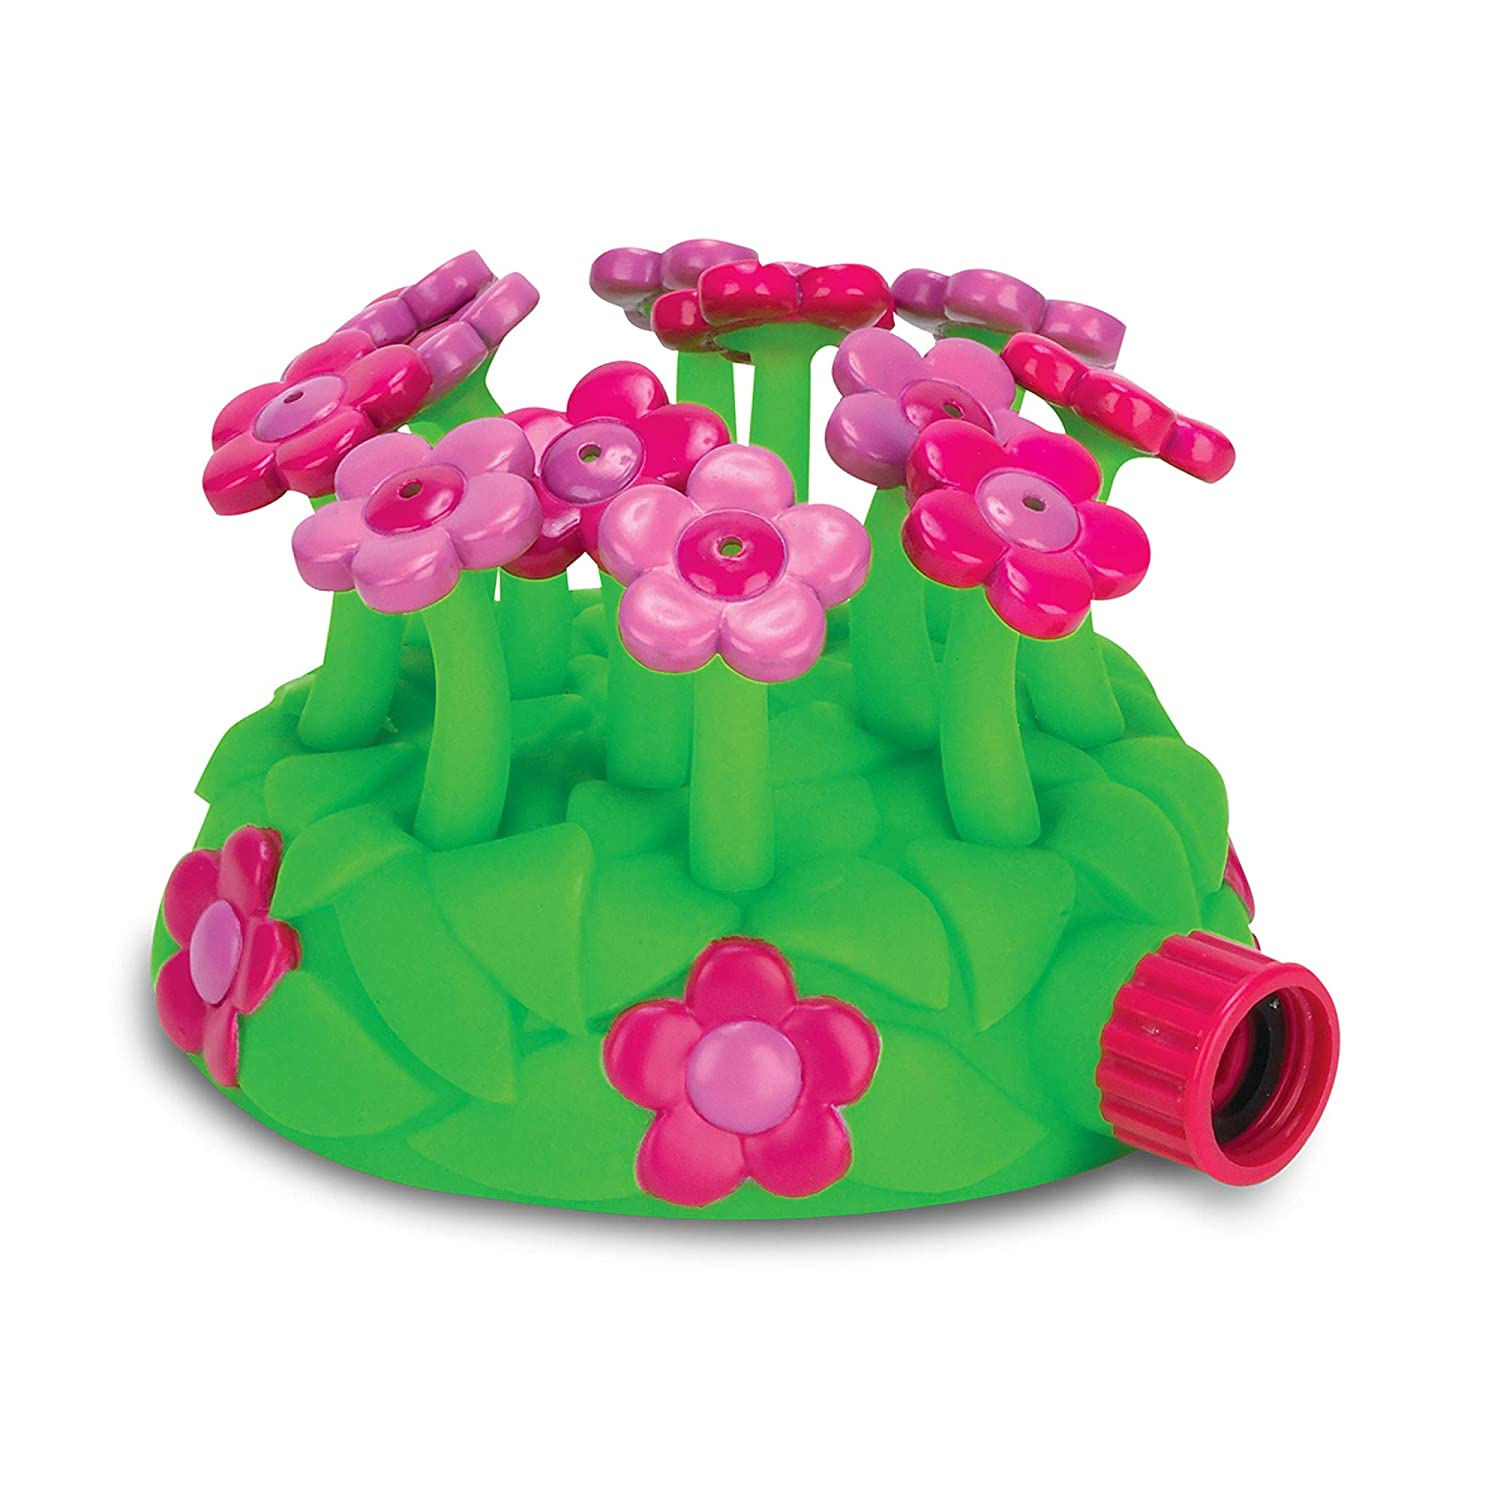 Melissa & Doug Sunny Patch Blossom Bright Sprinkler, Great Gift for Girls and Boys - Best for 3, 4, 5 Year Olds and Up